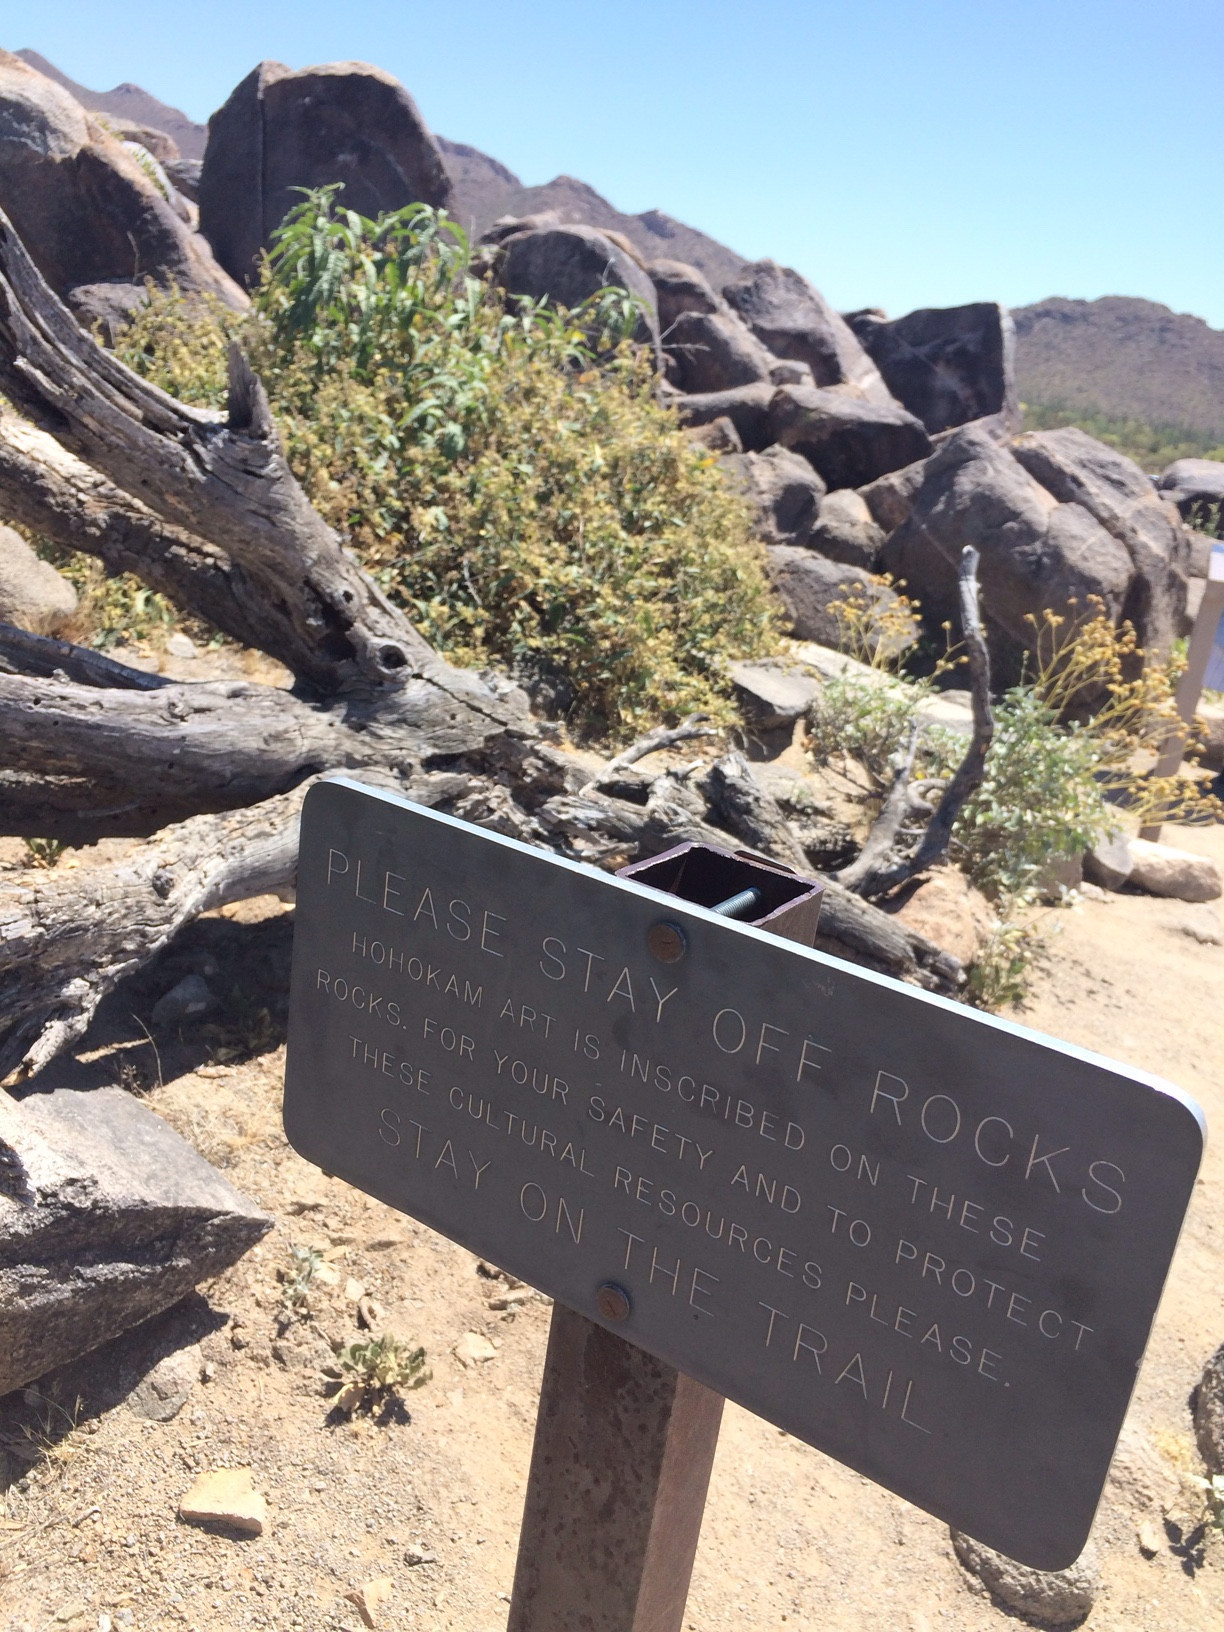 Stay off rocks sign